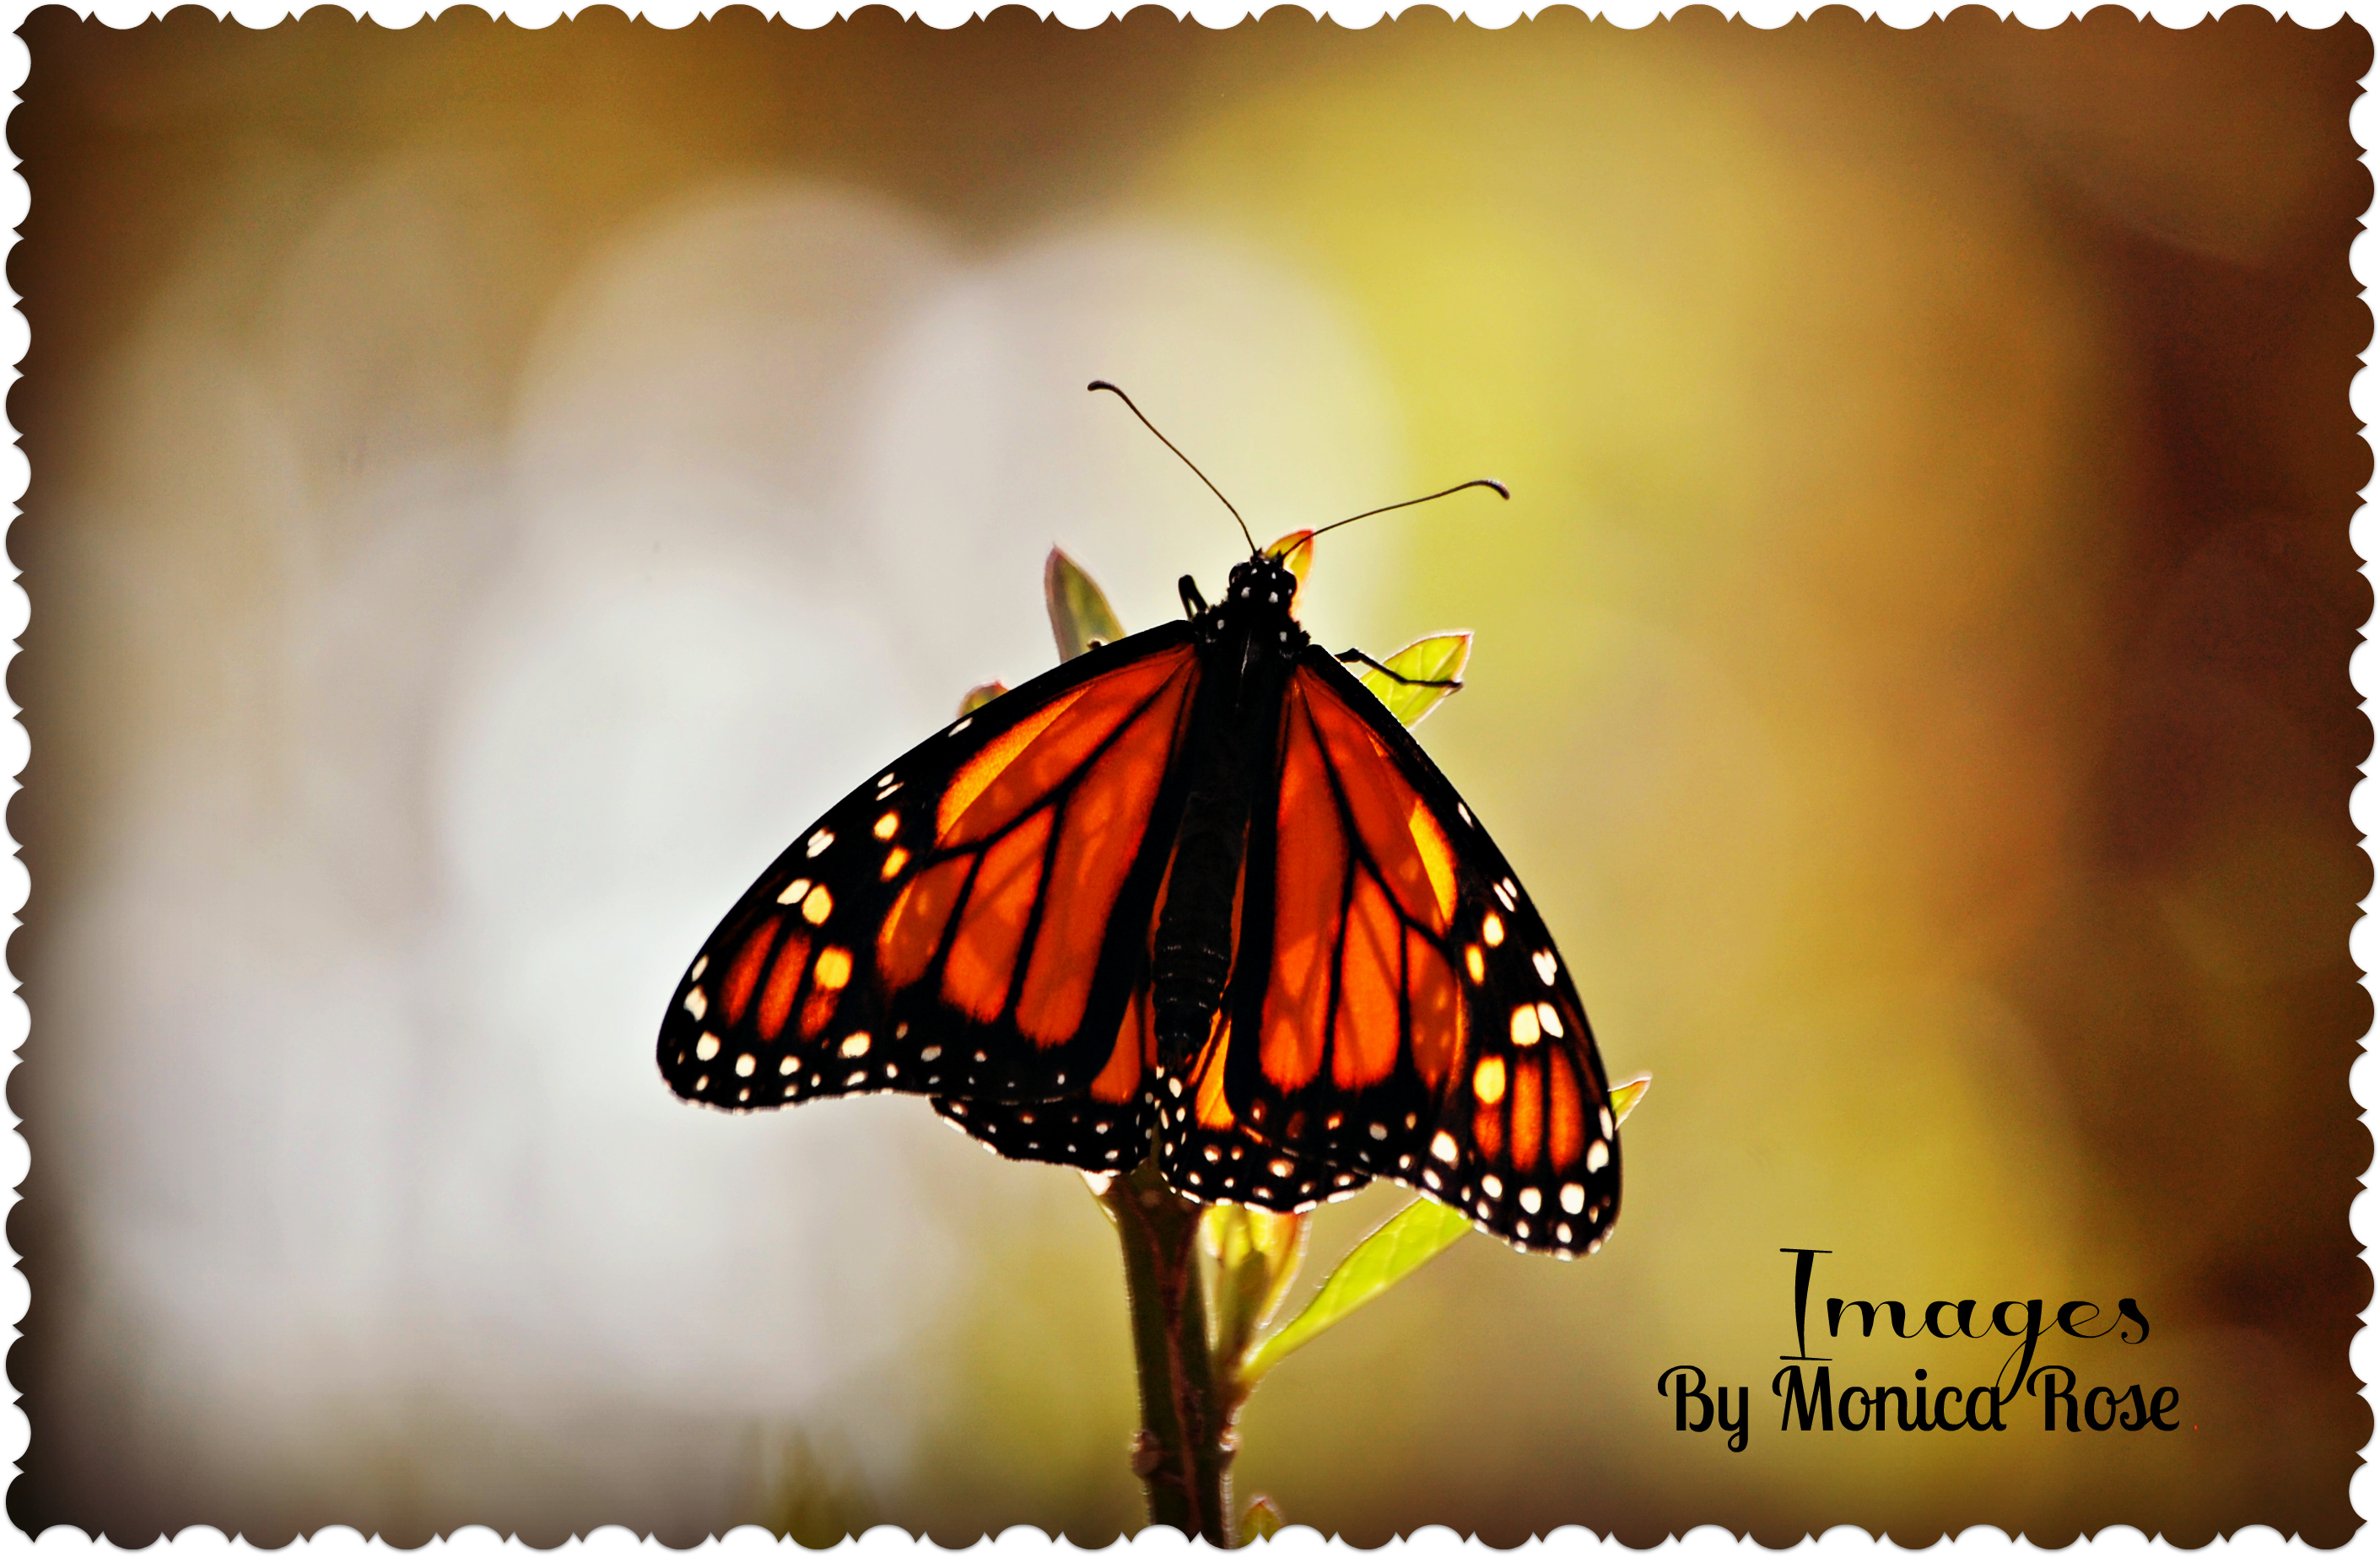 Just living is not enough said thebutterfly,